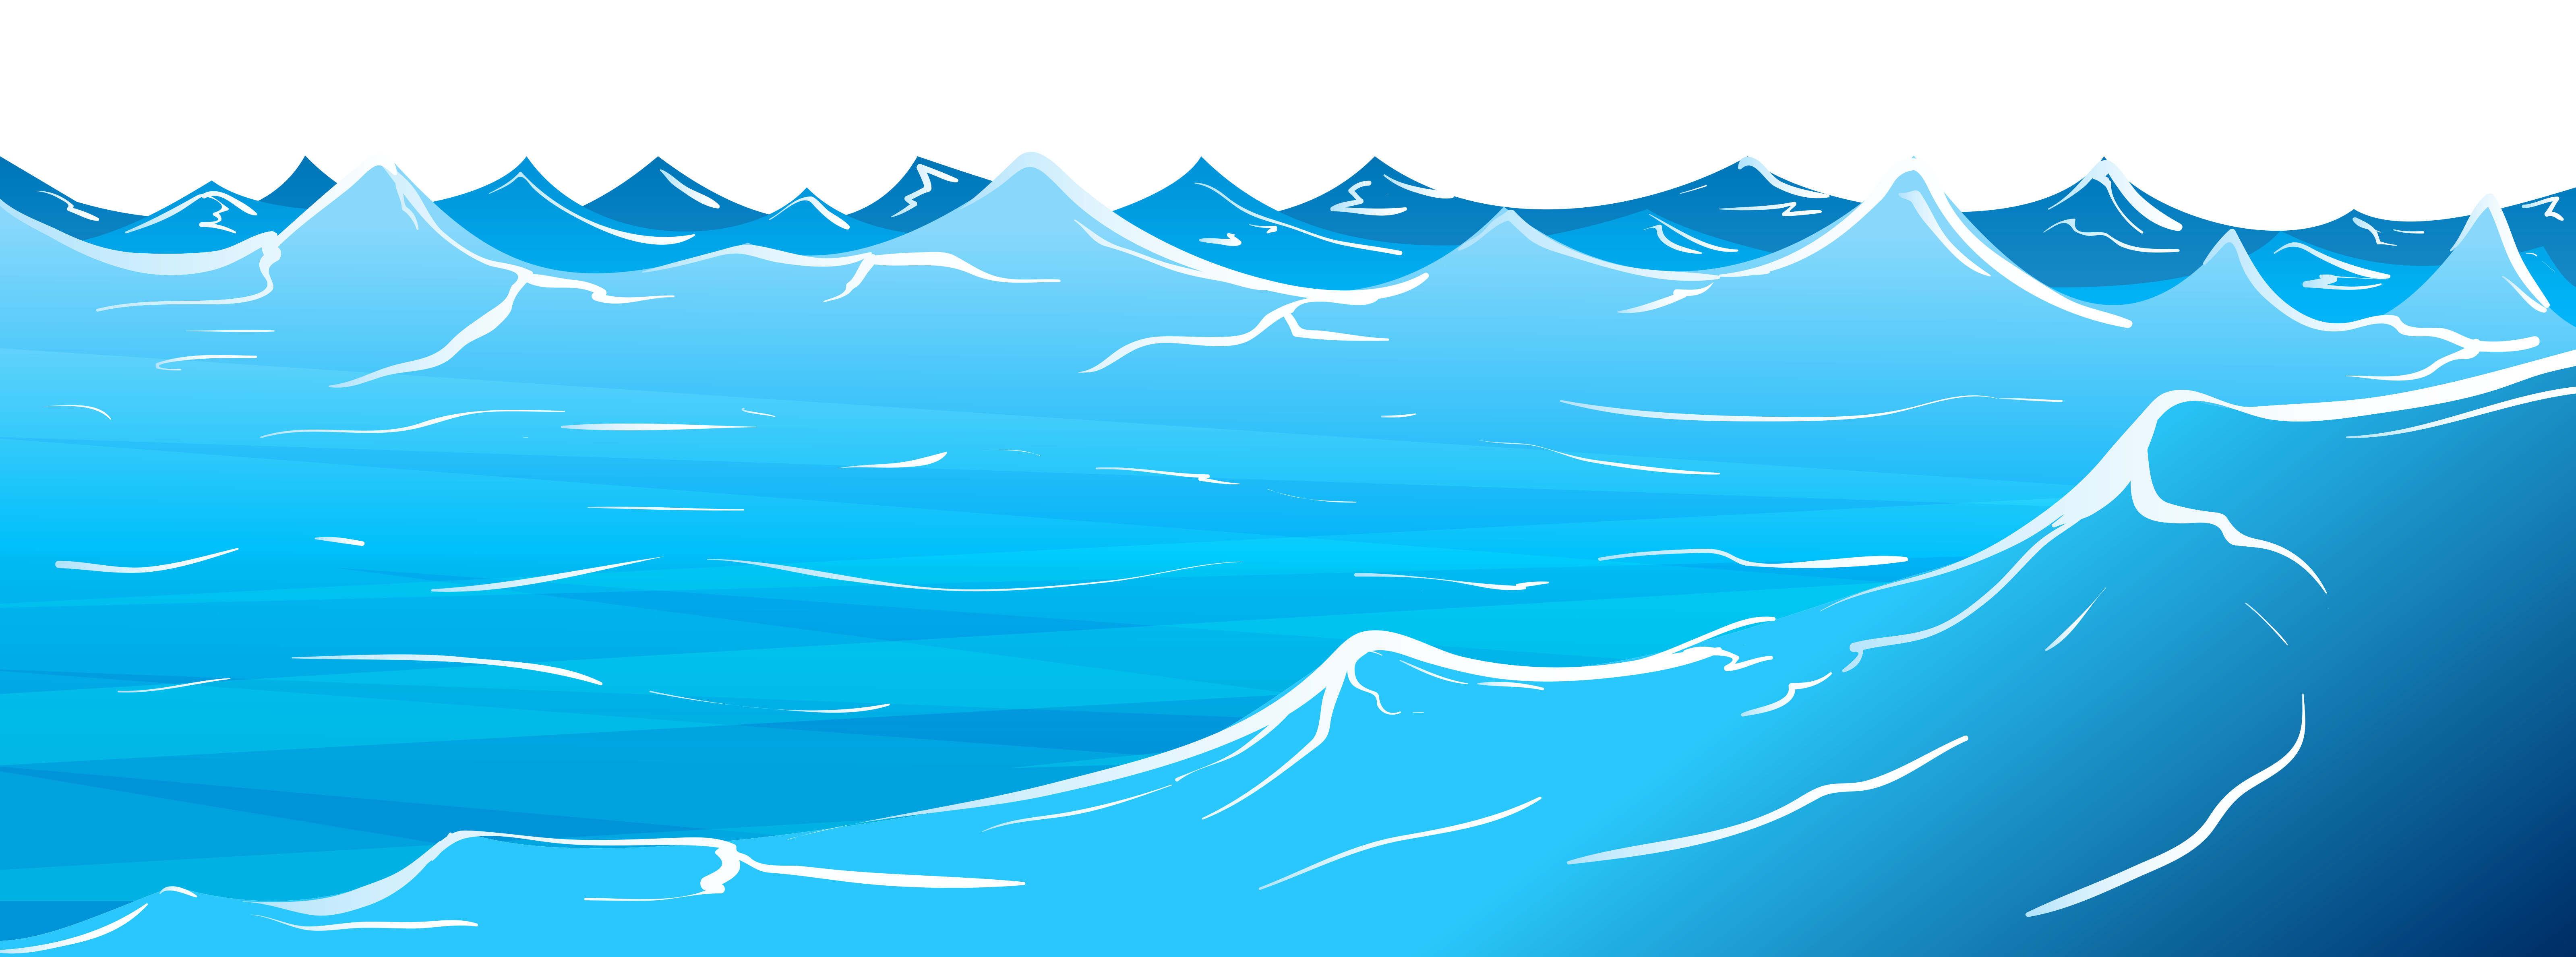 Water cycle clipart graphic library stock What is in ocean water? | Earth science | Pinterest | Clipart ... graphic library stock